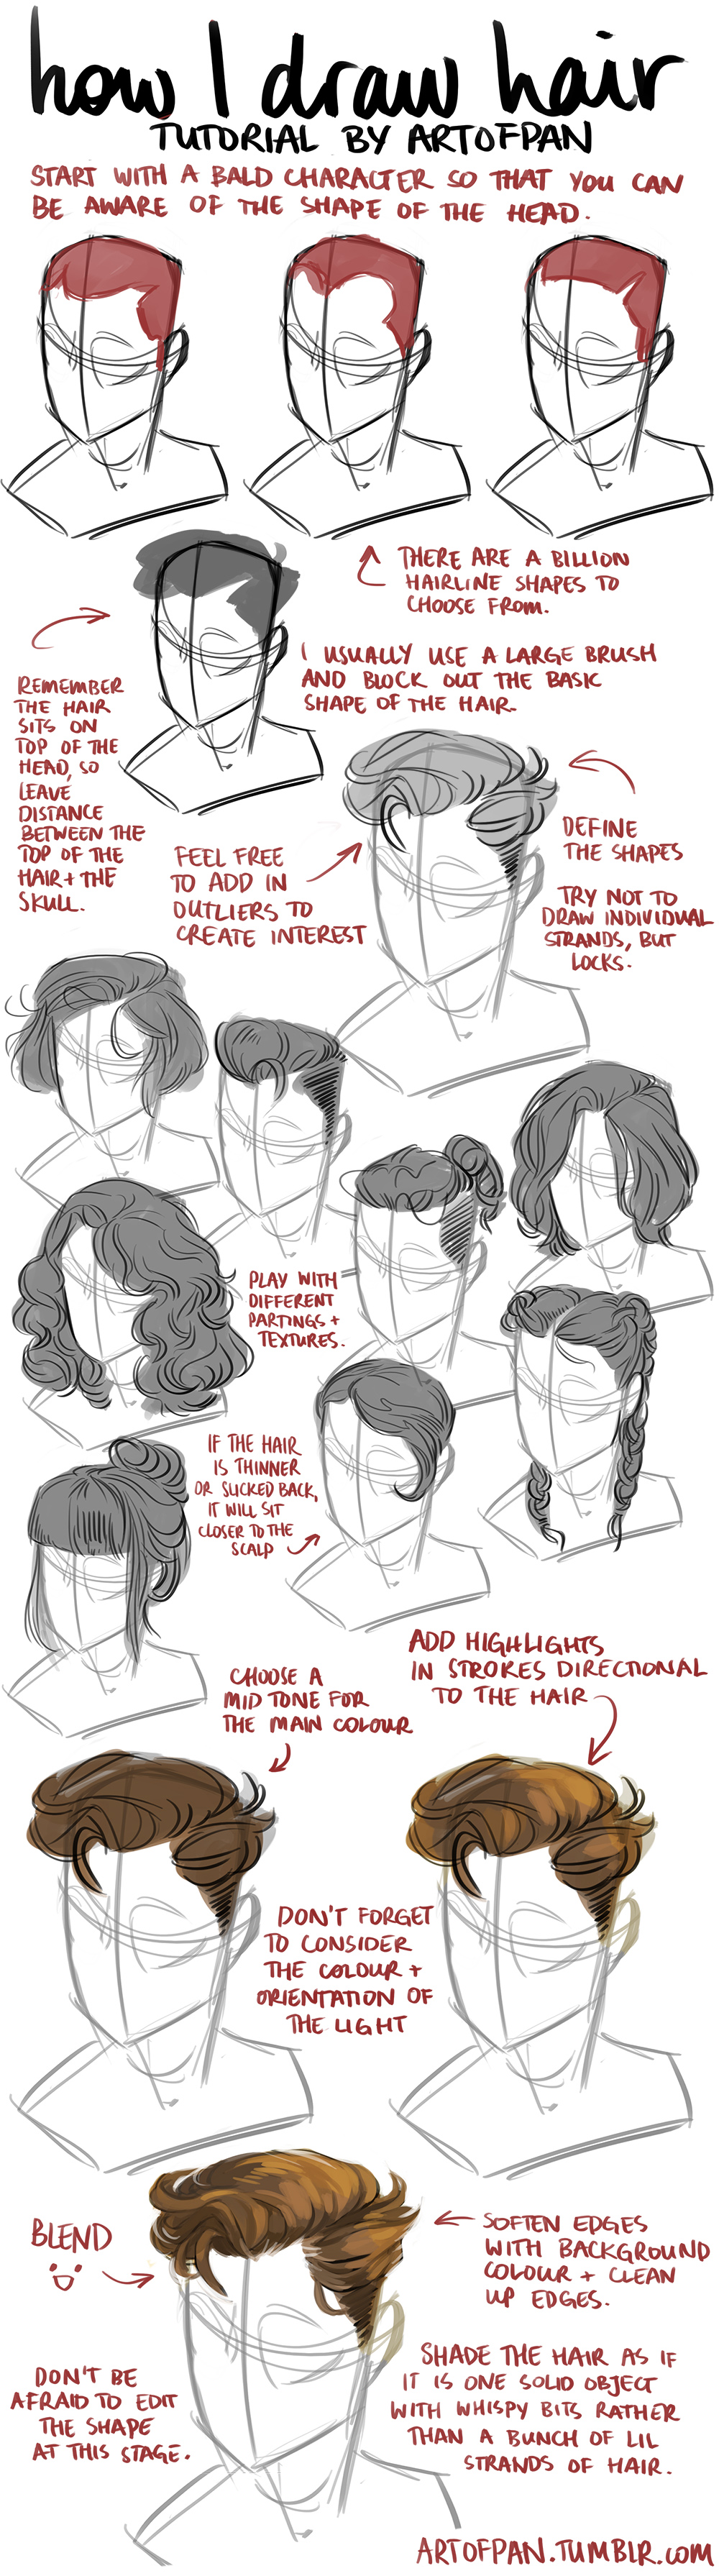 Character Design Tutorial Manga : Hair tutorial by artofpan on deviantart